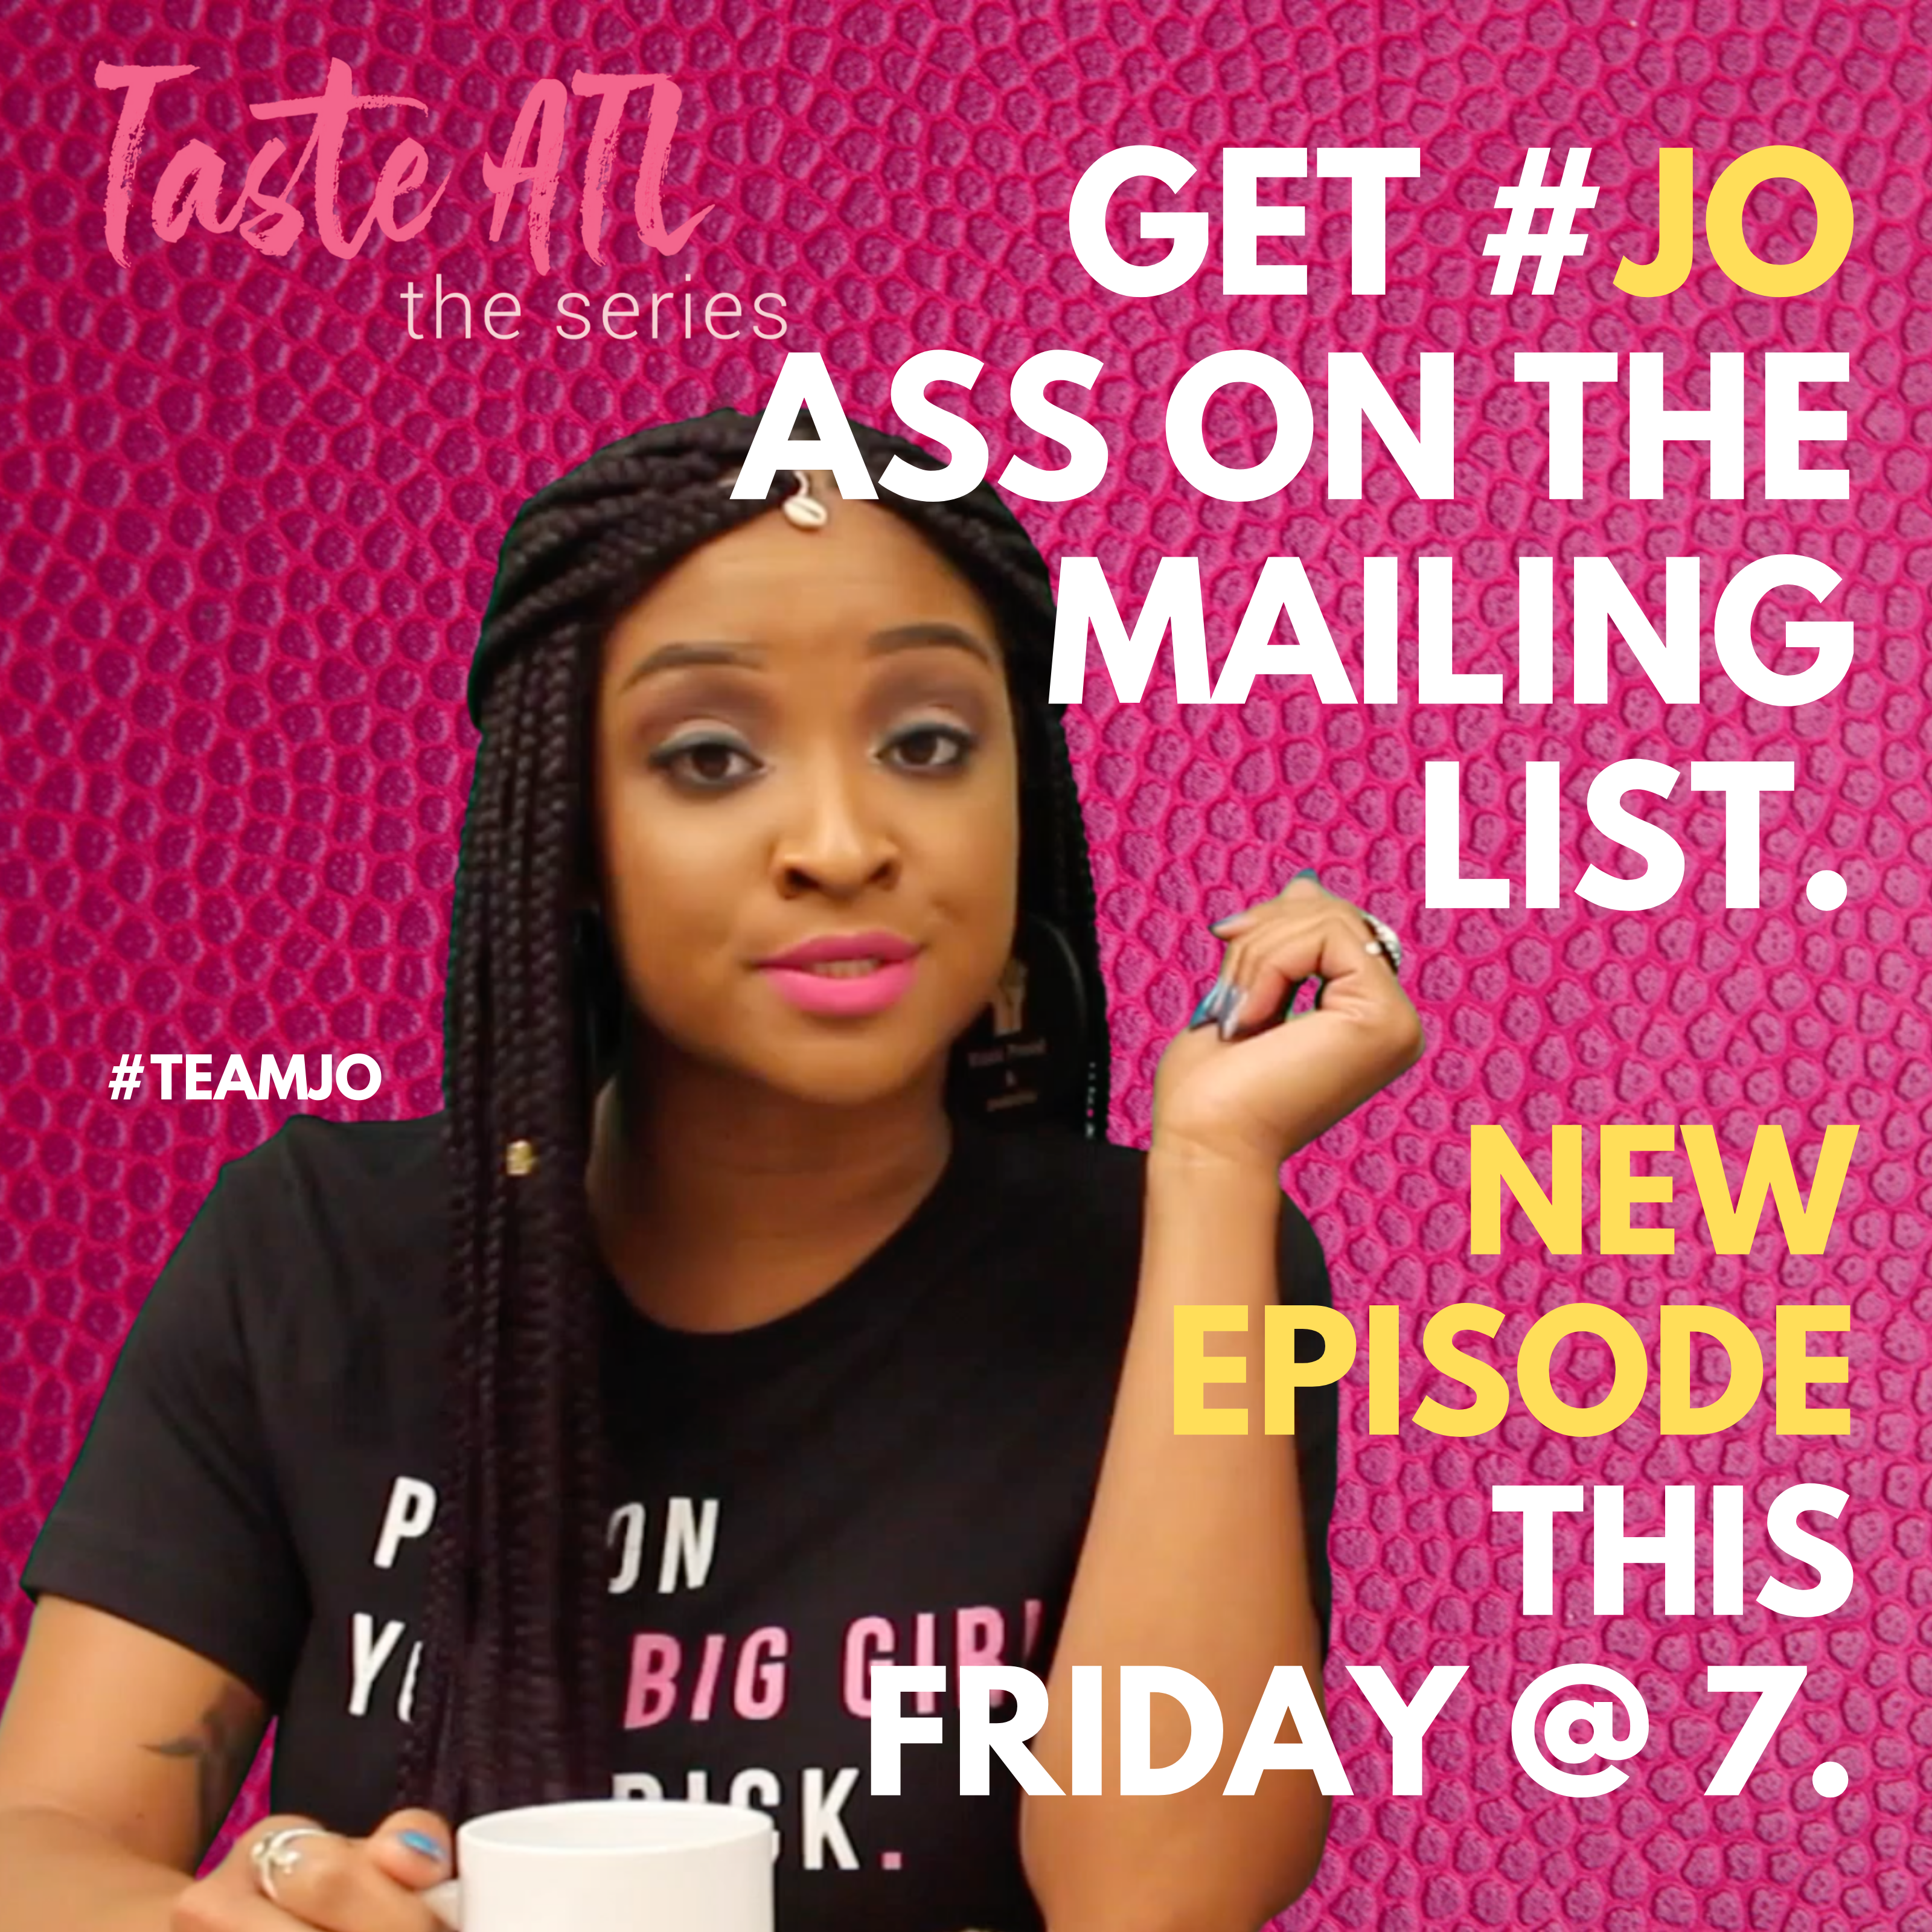 Taste ATL: The Series is Quenching our Thirst this Friday @ 7PM ET.